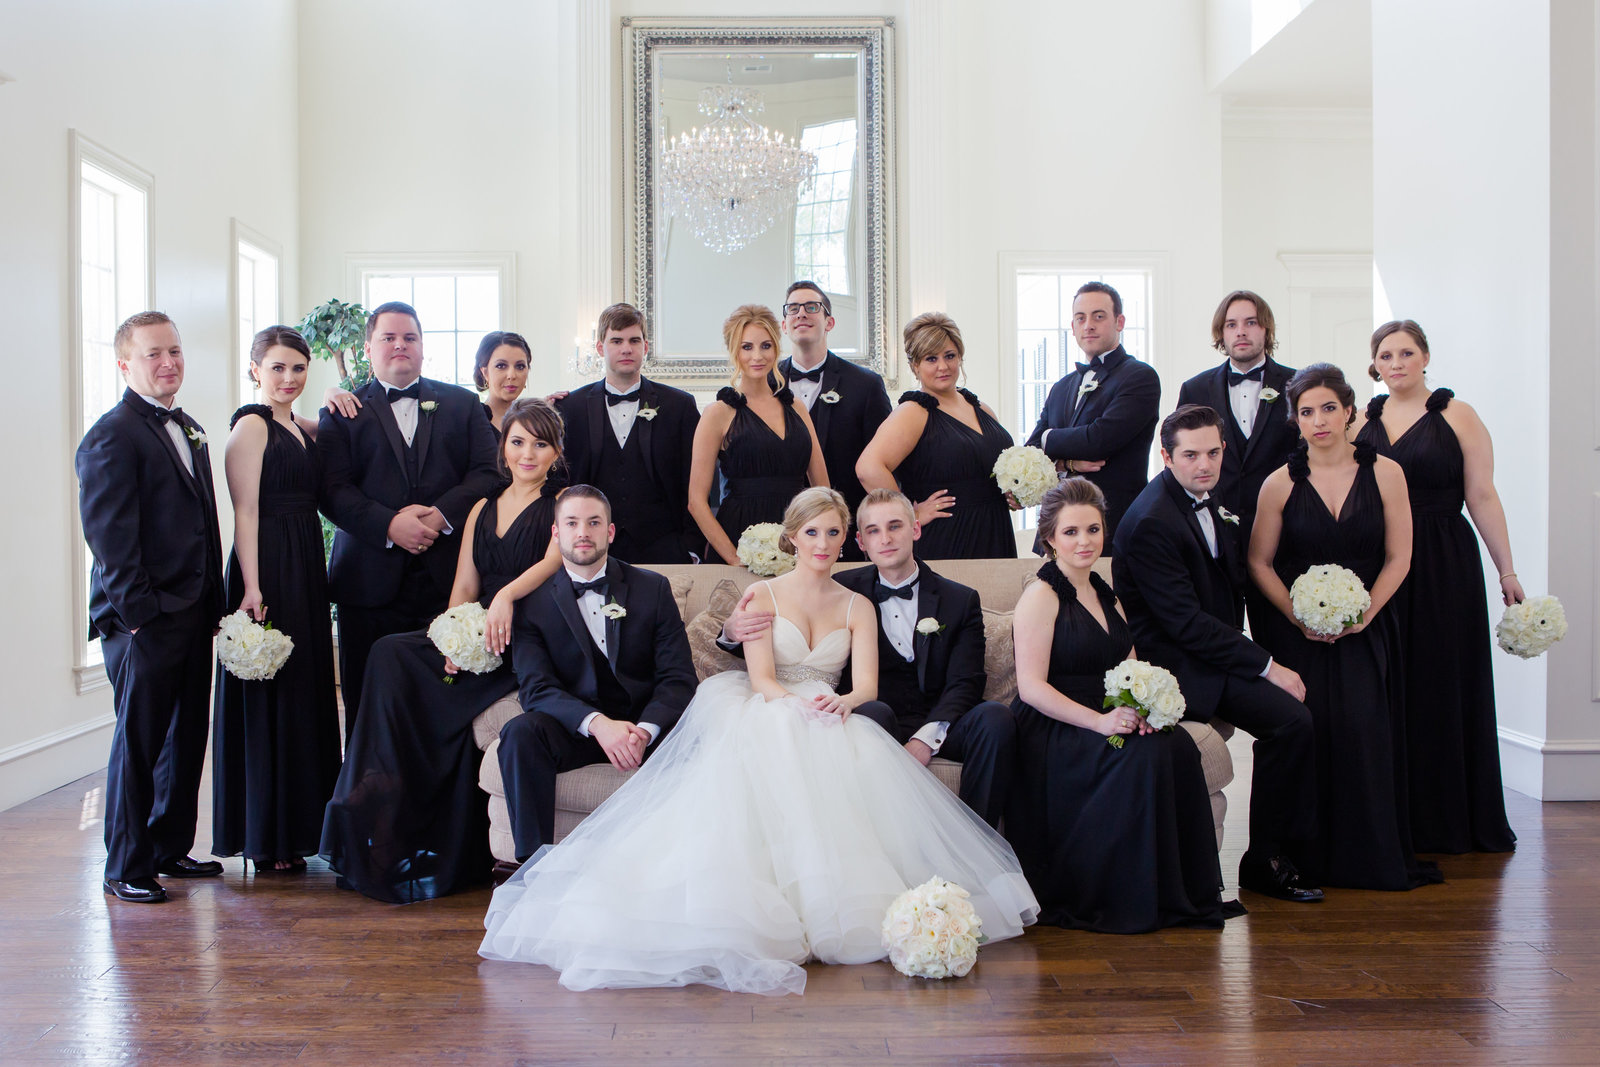 Bridal party photo at The Milestone Krum by Brittany Barclay Photography